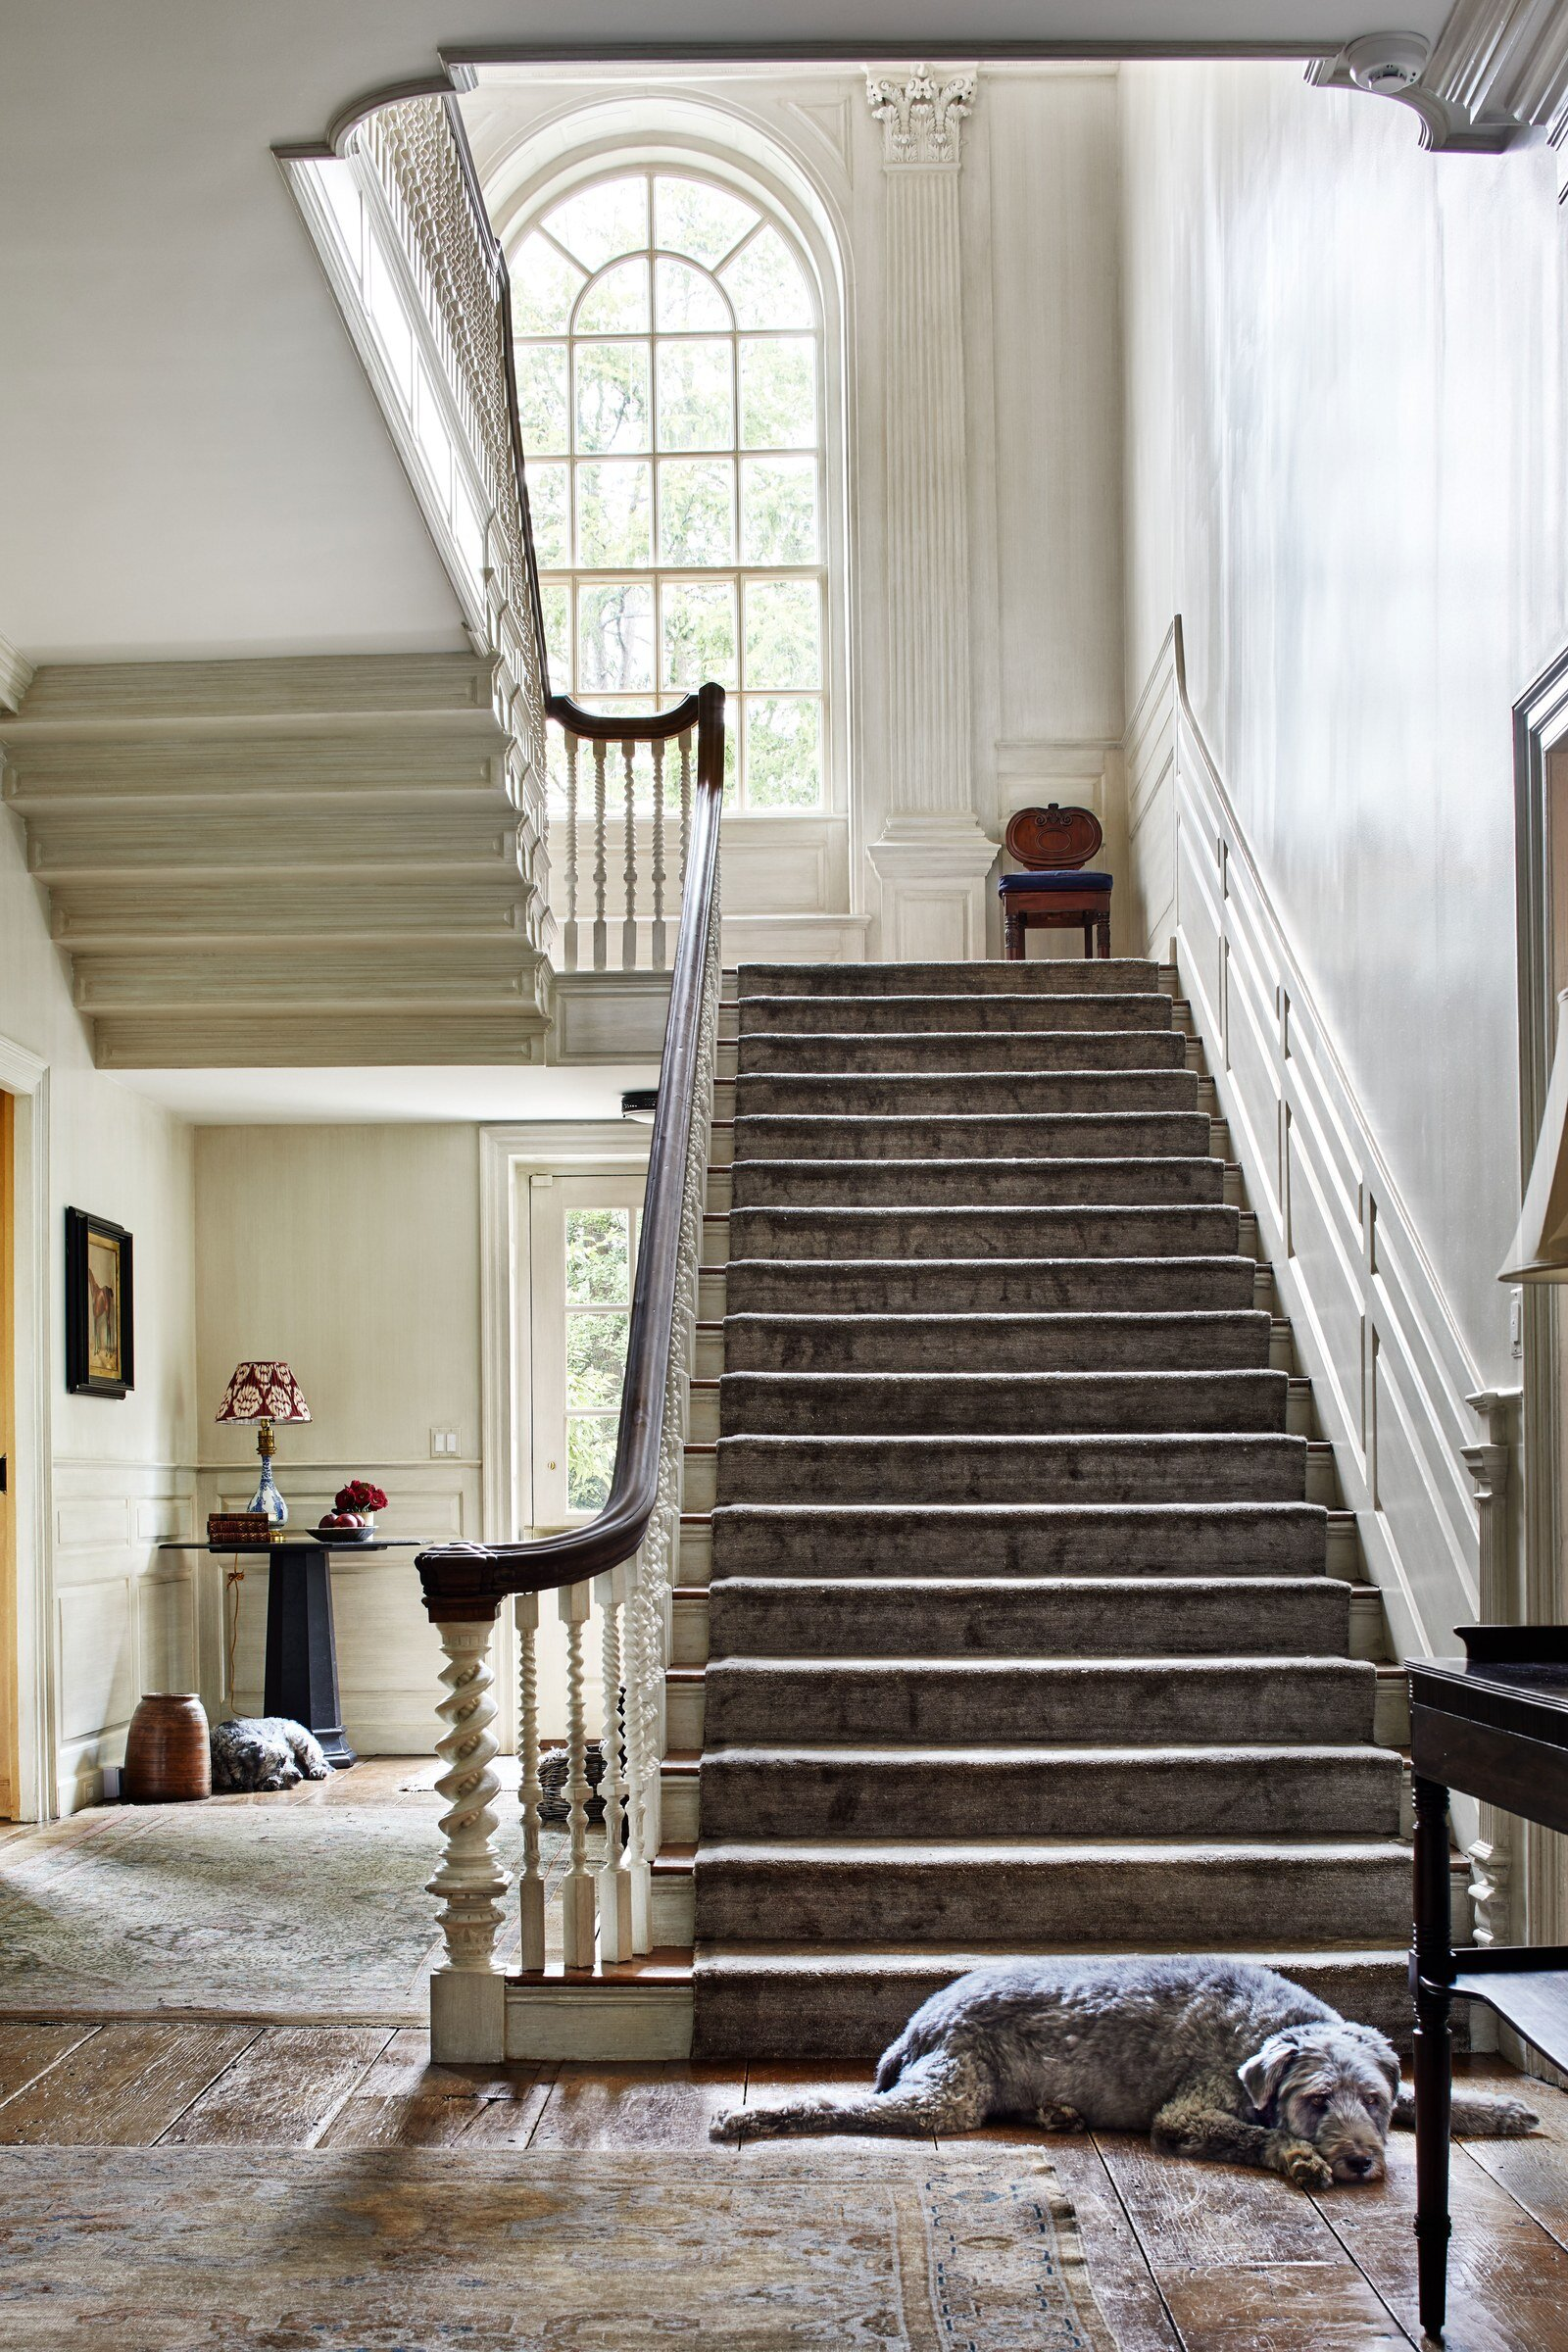 The home's foyer features an exceptionally spacious staircase, with a runner rug sourced from David Zadeh.